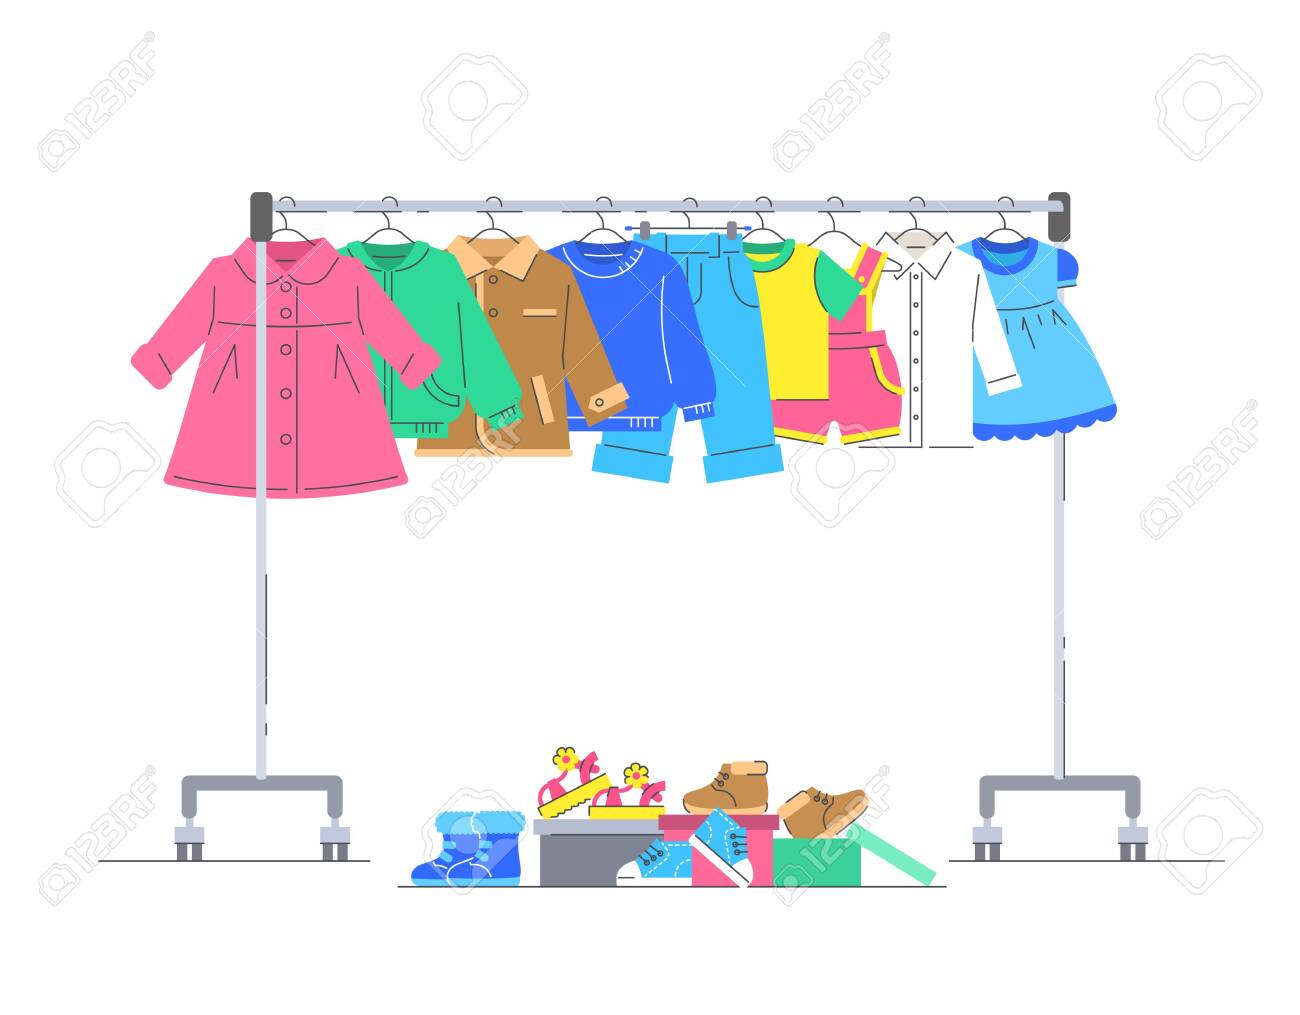 Baby Clothes On Hanger Rack With Shoes Flat Lines Vector Illustration Royalty Free Cliparts Vectors And Stock Illustration Image 138417016